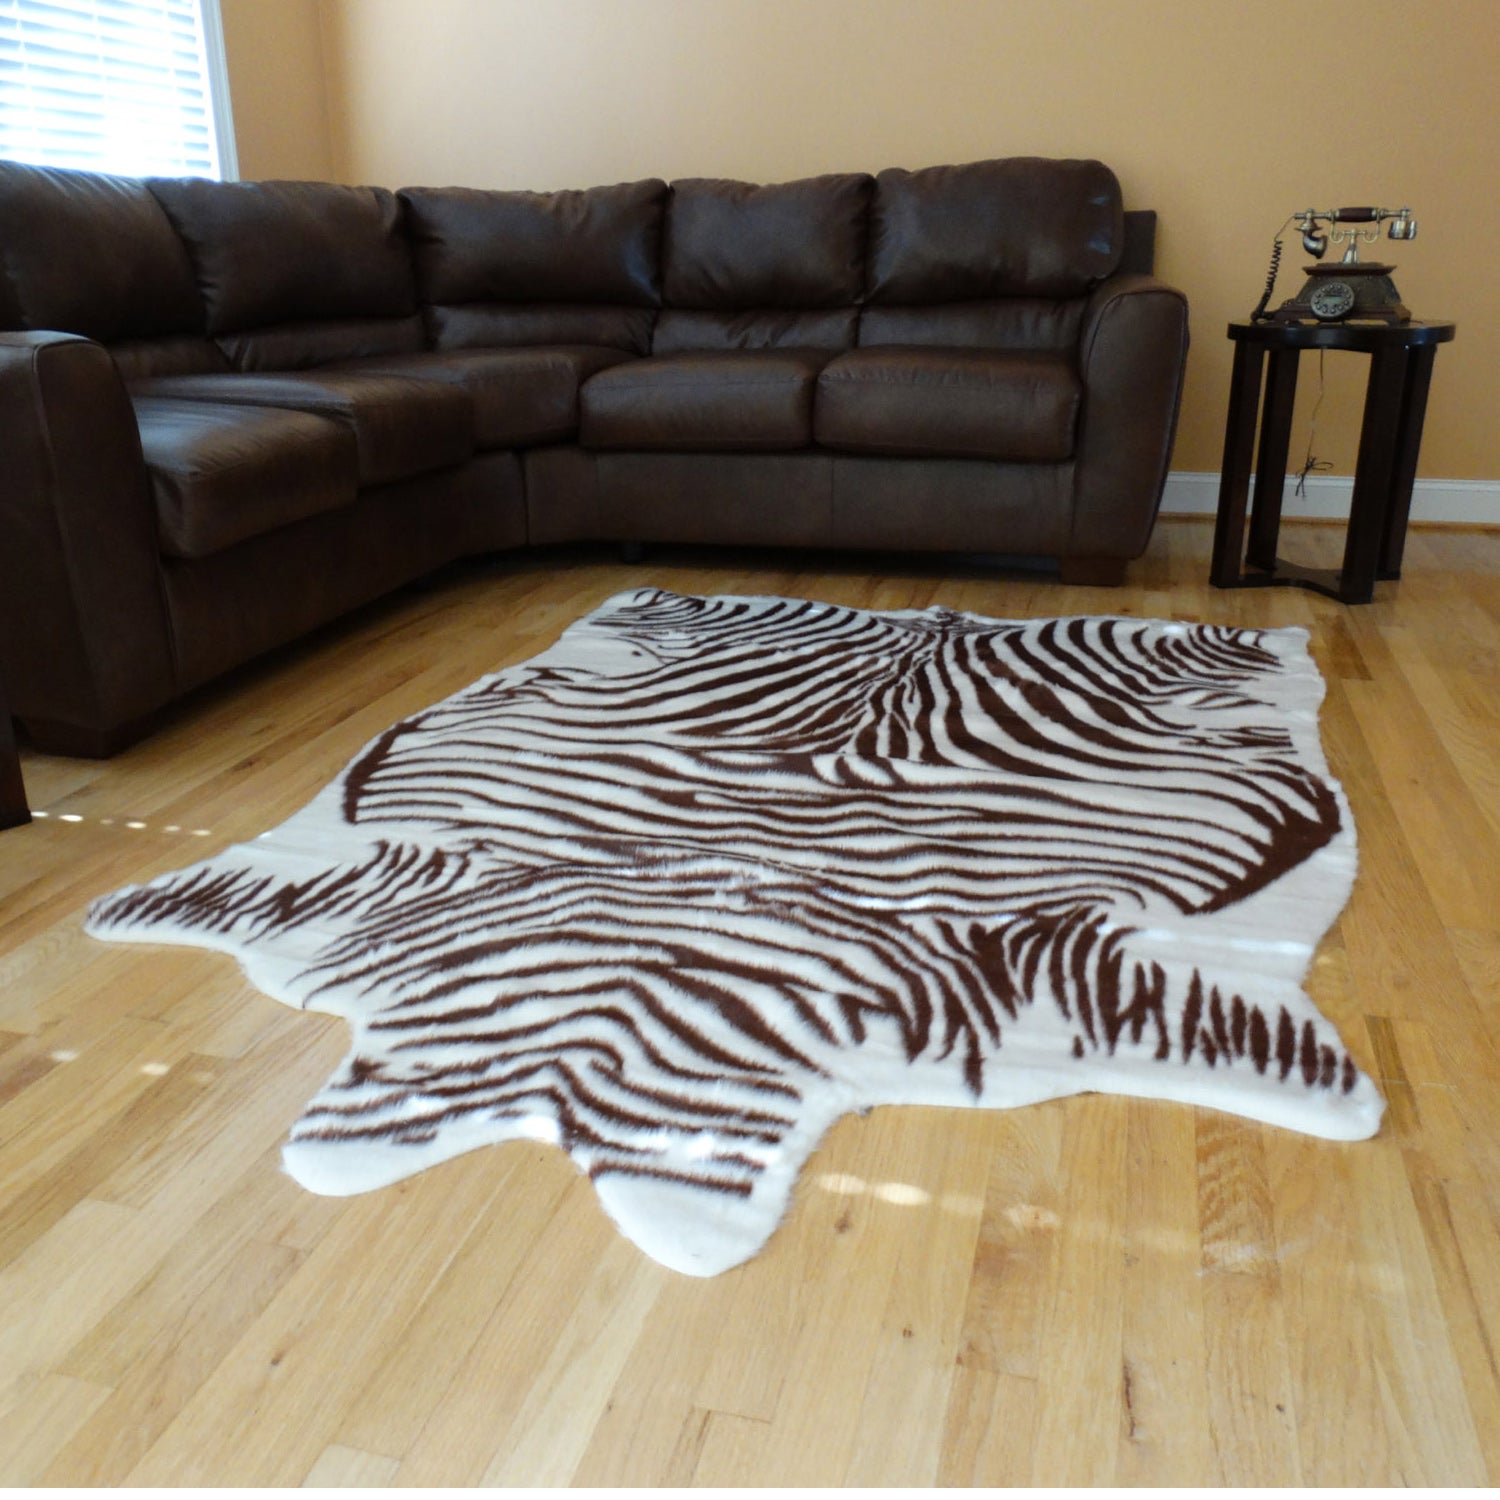 Zebra hide Brown and White Acrylic Fur Rug (5'x7') - Free Shipping Today -  Overstock.com - 15590984